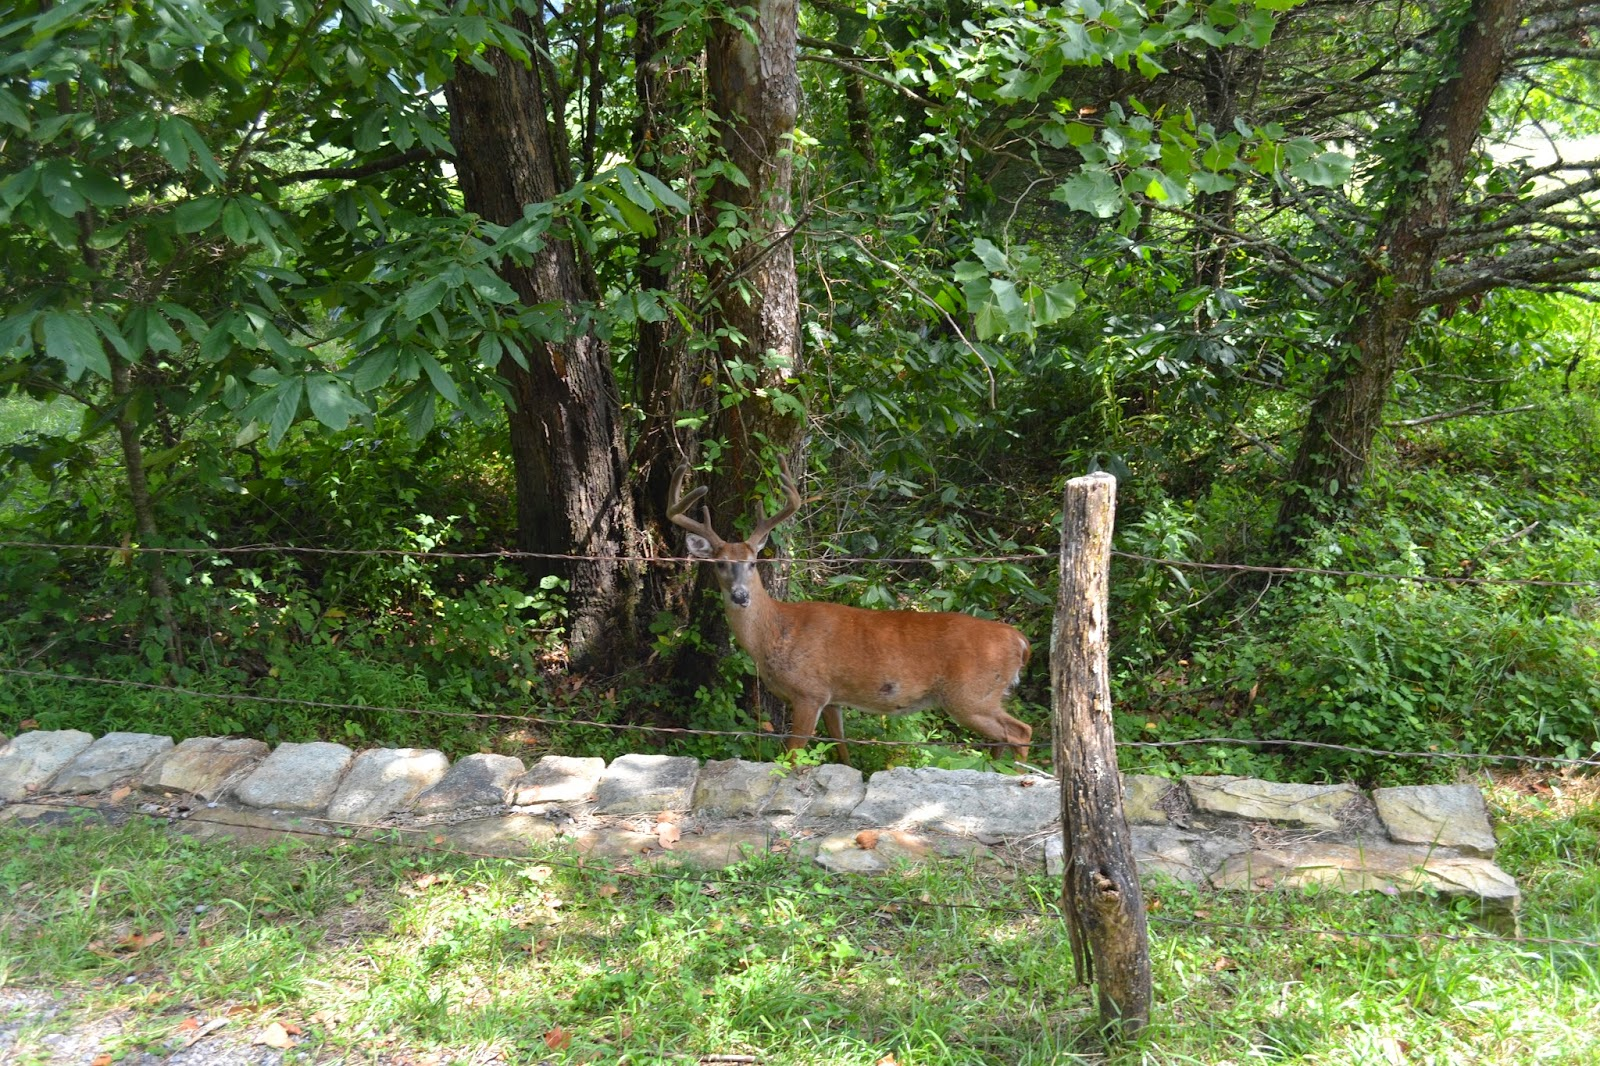 Wild deer in Cades Cove